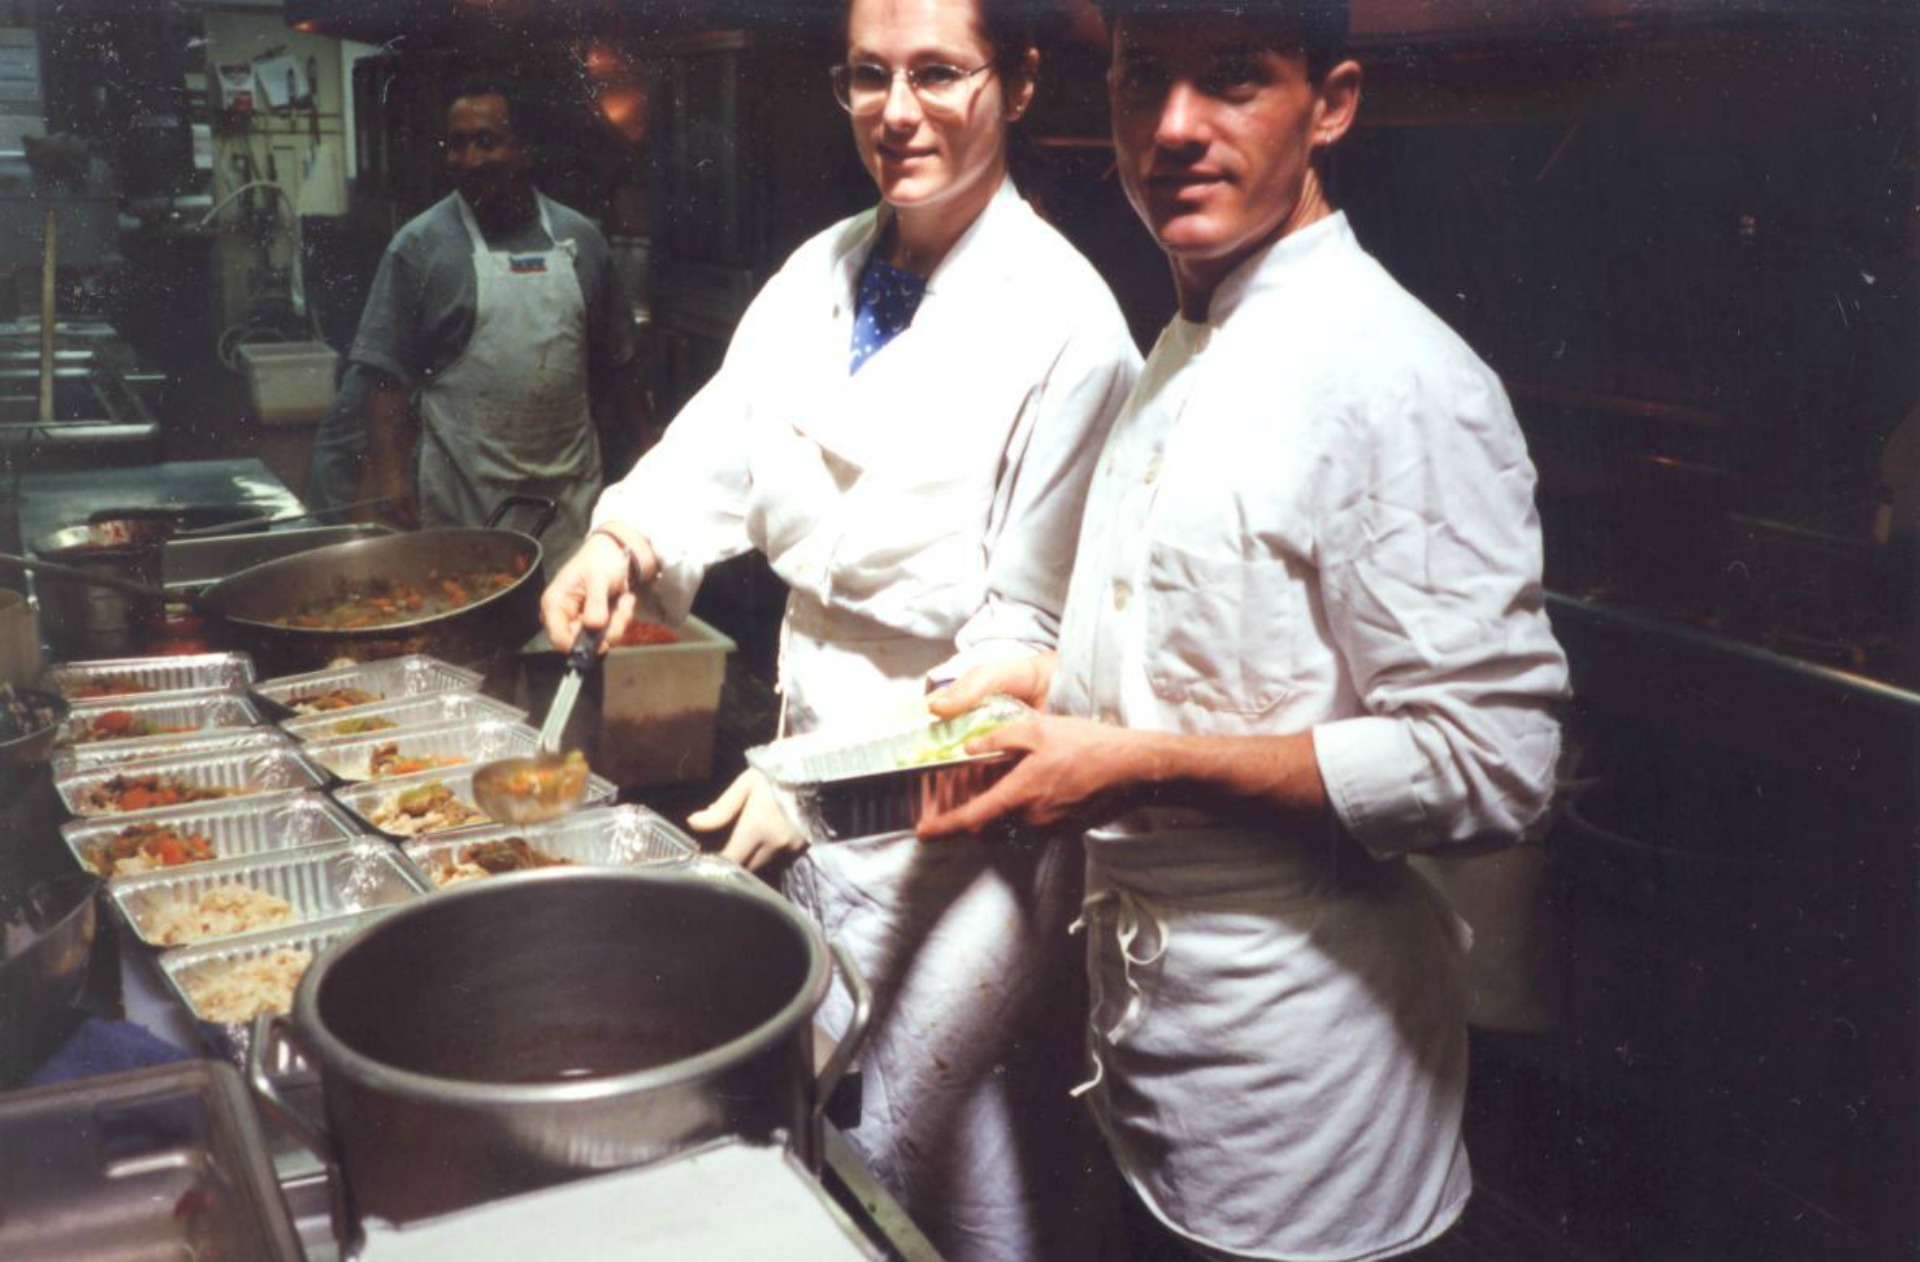 Volunteers prep meals in the organization's early days.